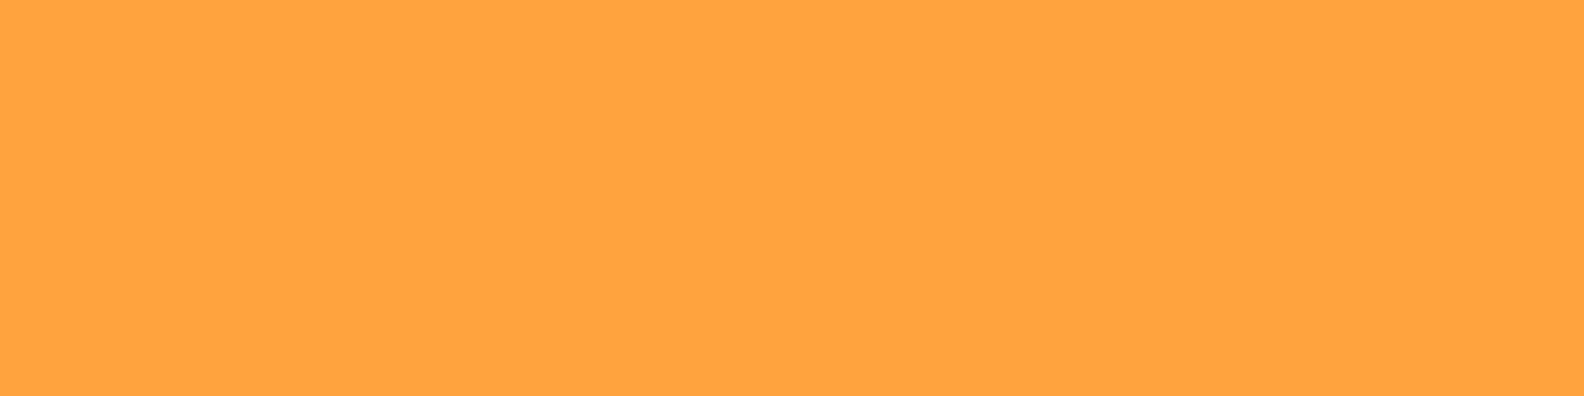 1584x396 Neon Carrot Solid Color Background